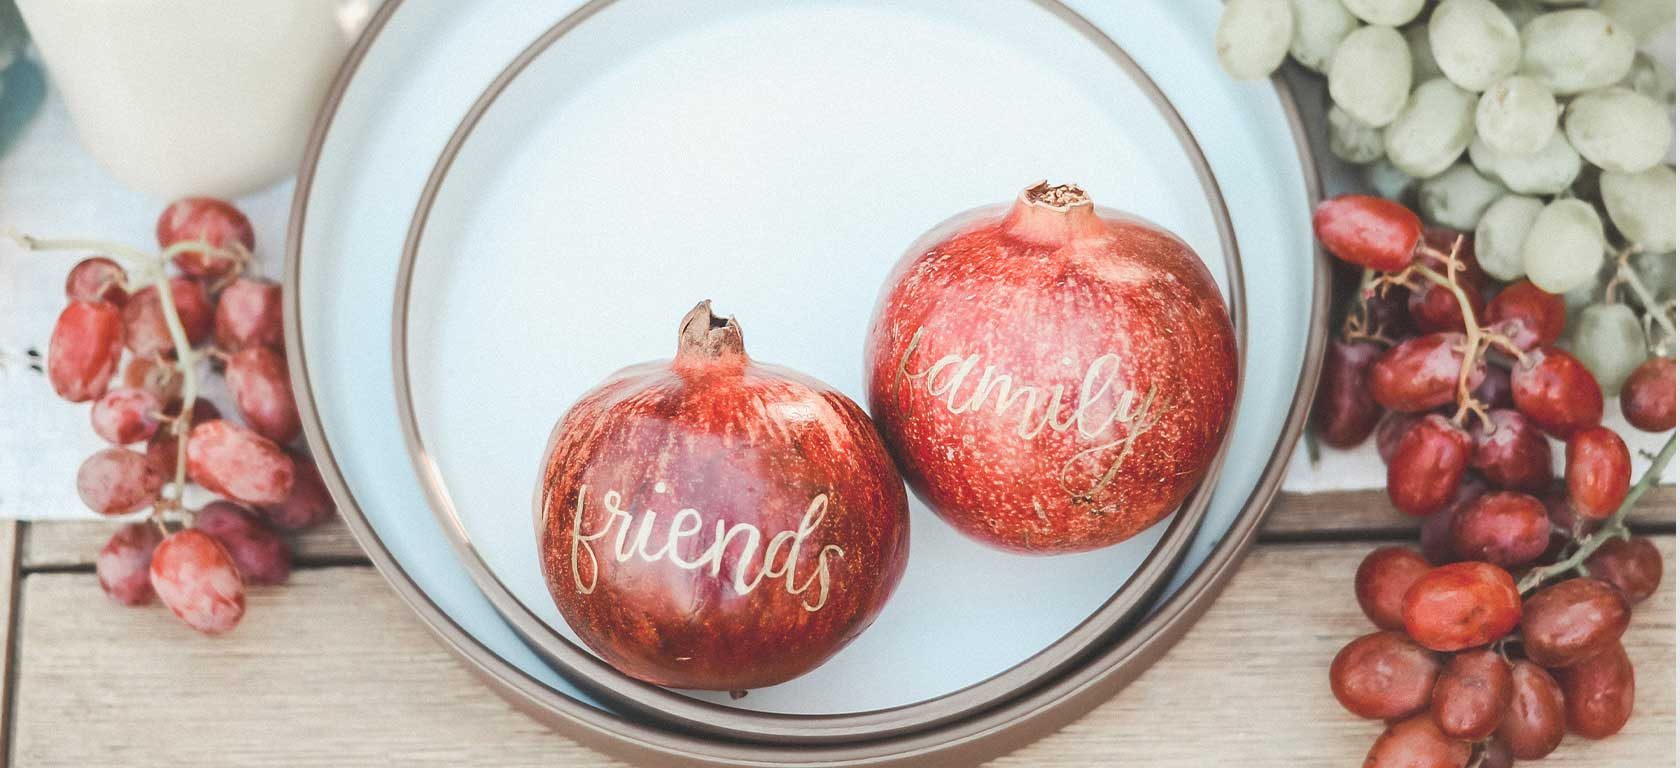 Elegant gold-trimmed plate holding tender pomegranates with the words friends and family on them.